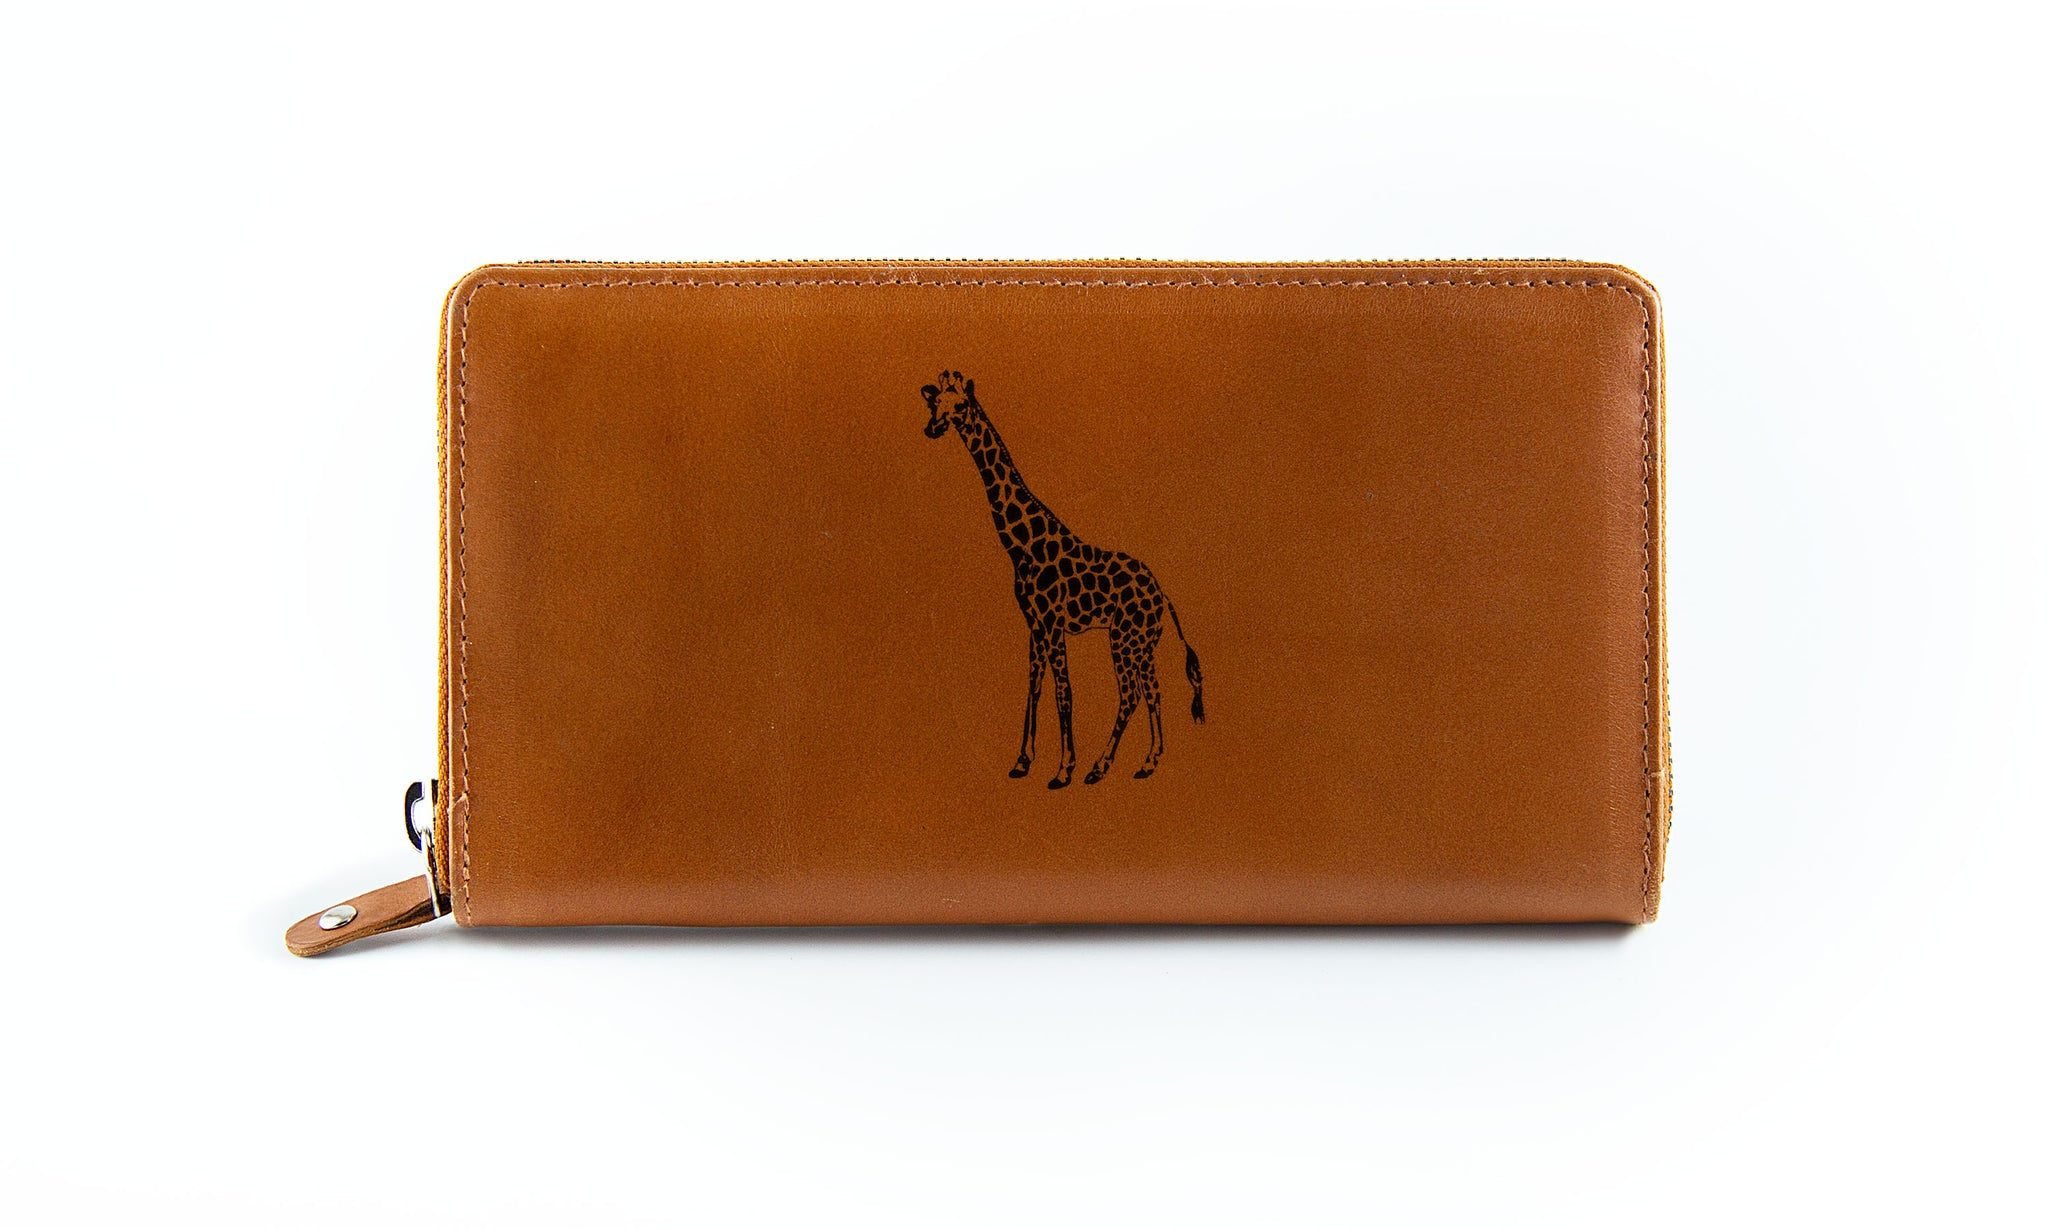 The Clutch - Camel (Black Print)